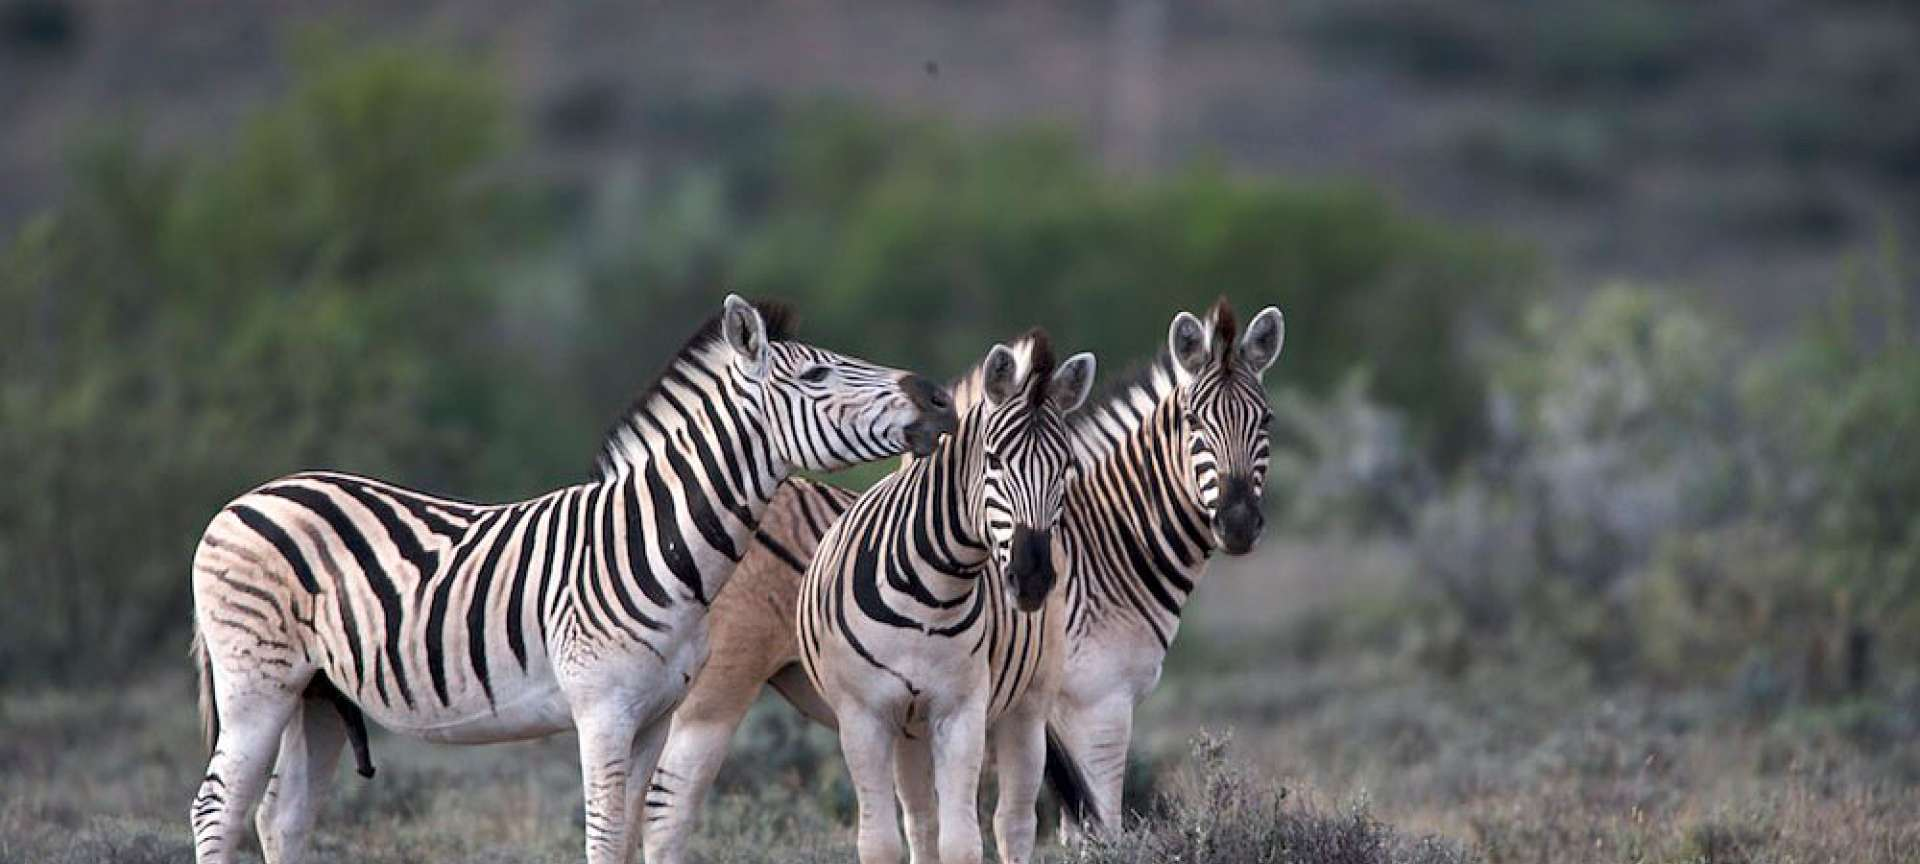 Wildlife in South Africa_Zebra Karoo National Park